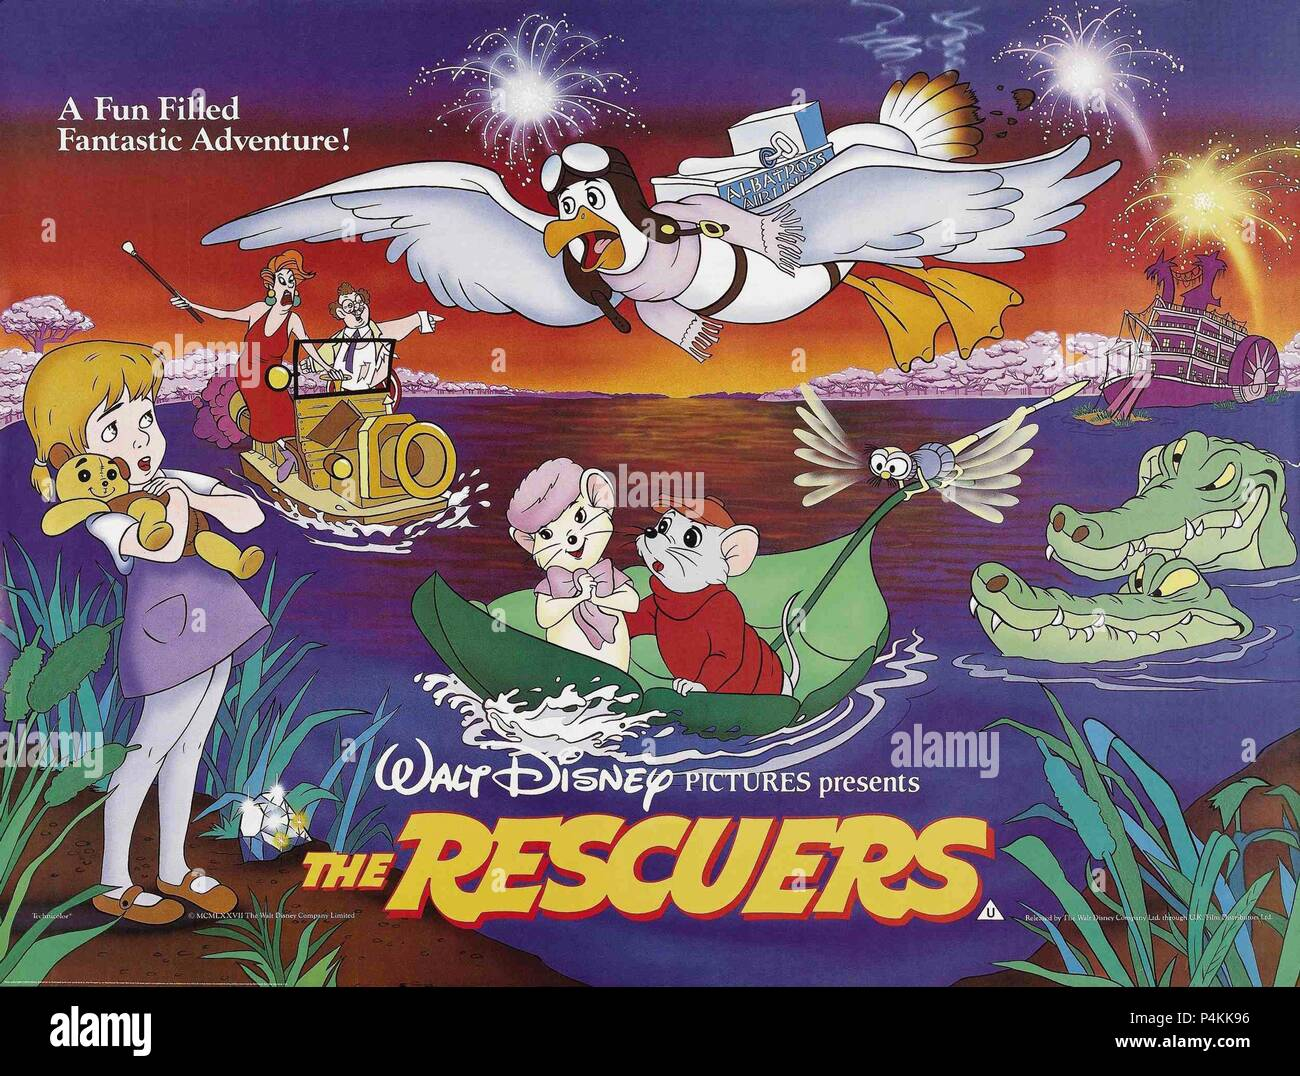 the rescuers movie download